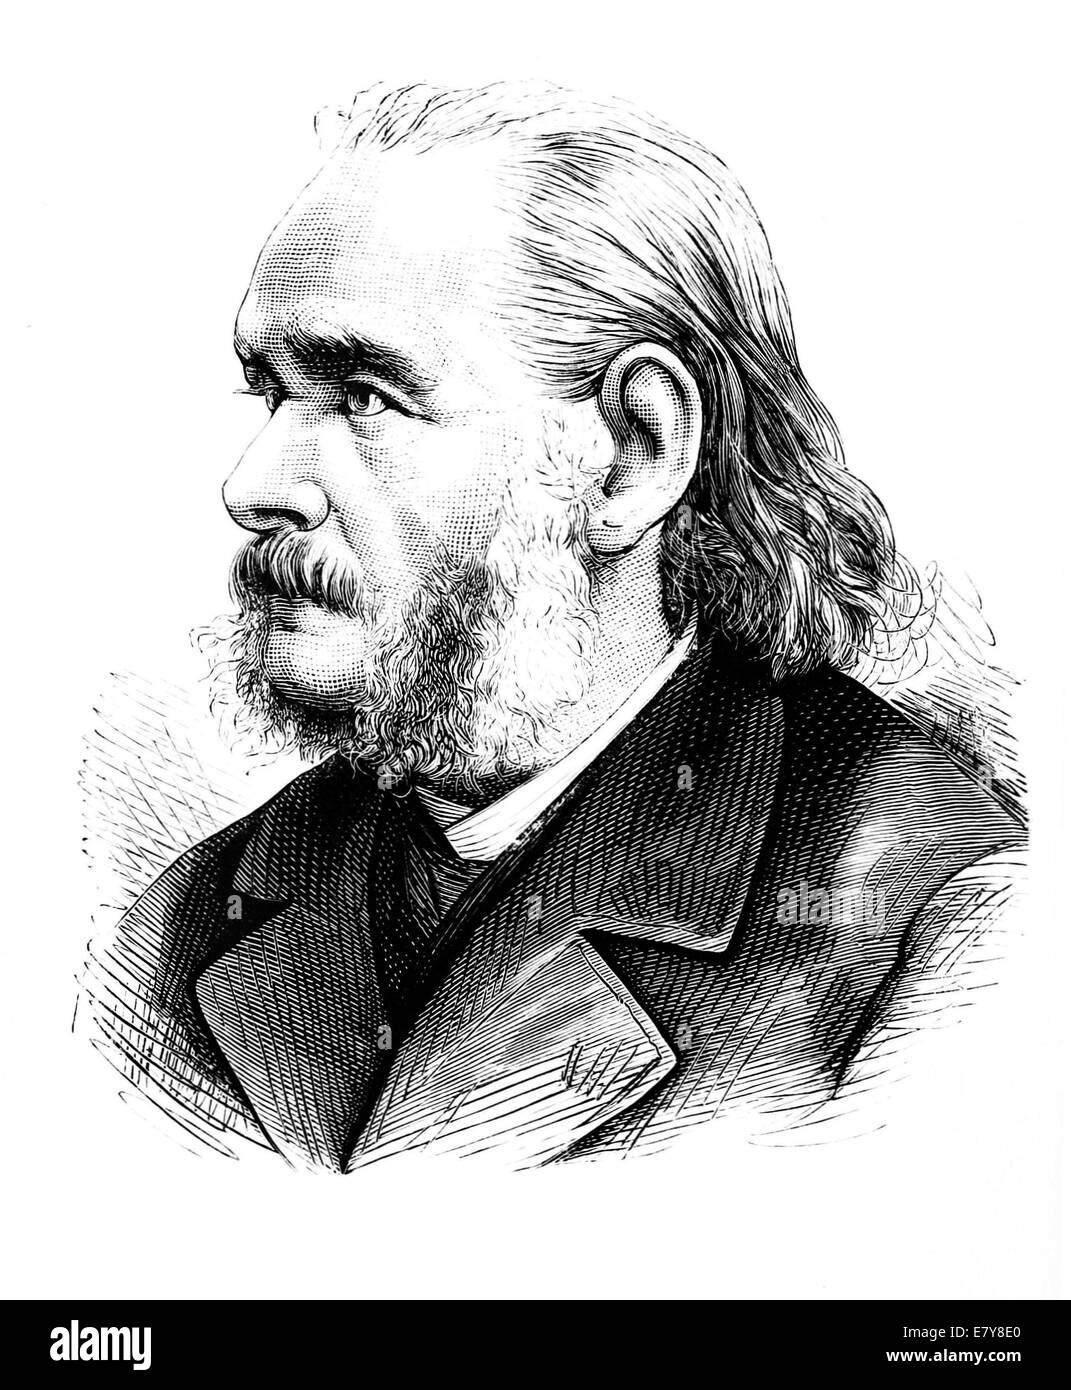 MATTHIAS SCHLEIDEN (1804-1881) German botanist and co-founder of cell theory - Stock Image